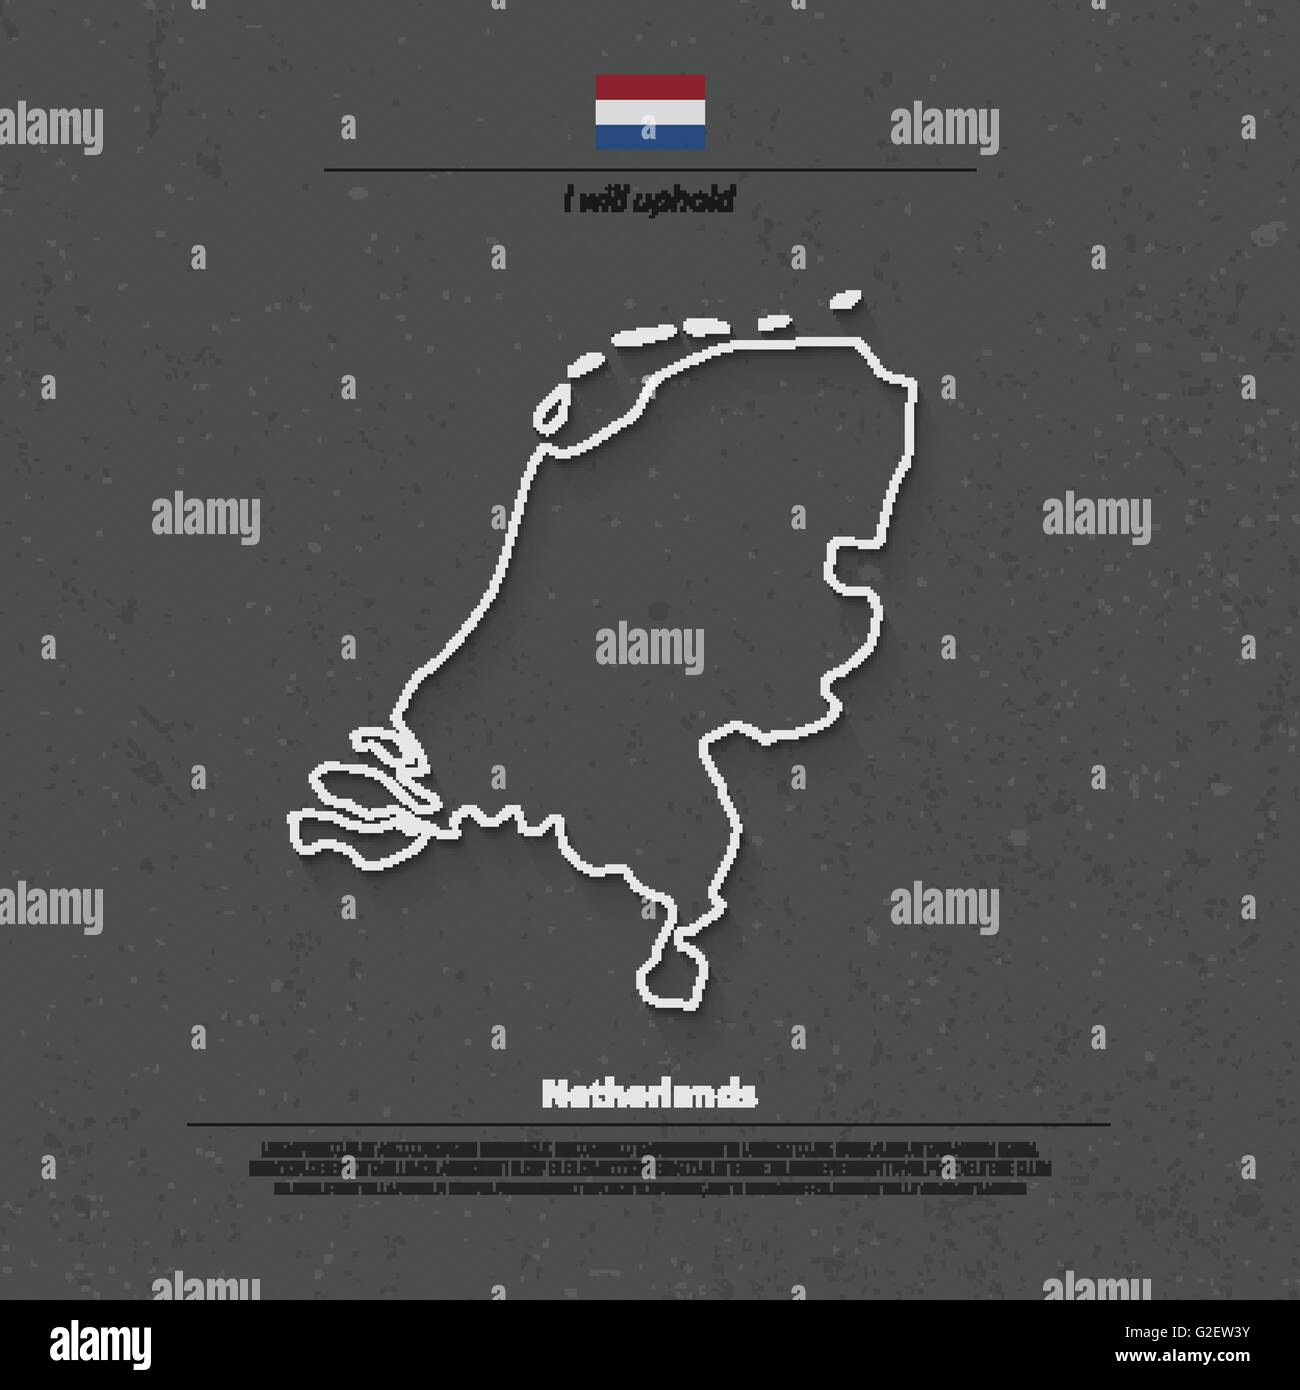 Kingdom of the Netherlands isolated map and official flag icons. vector Dutch political map thin line icon. EU geographic - Stock Vector